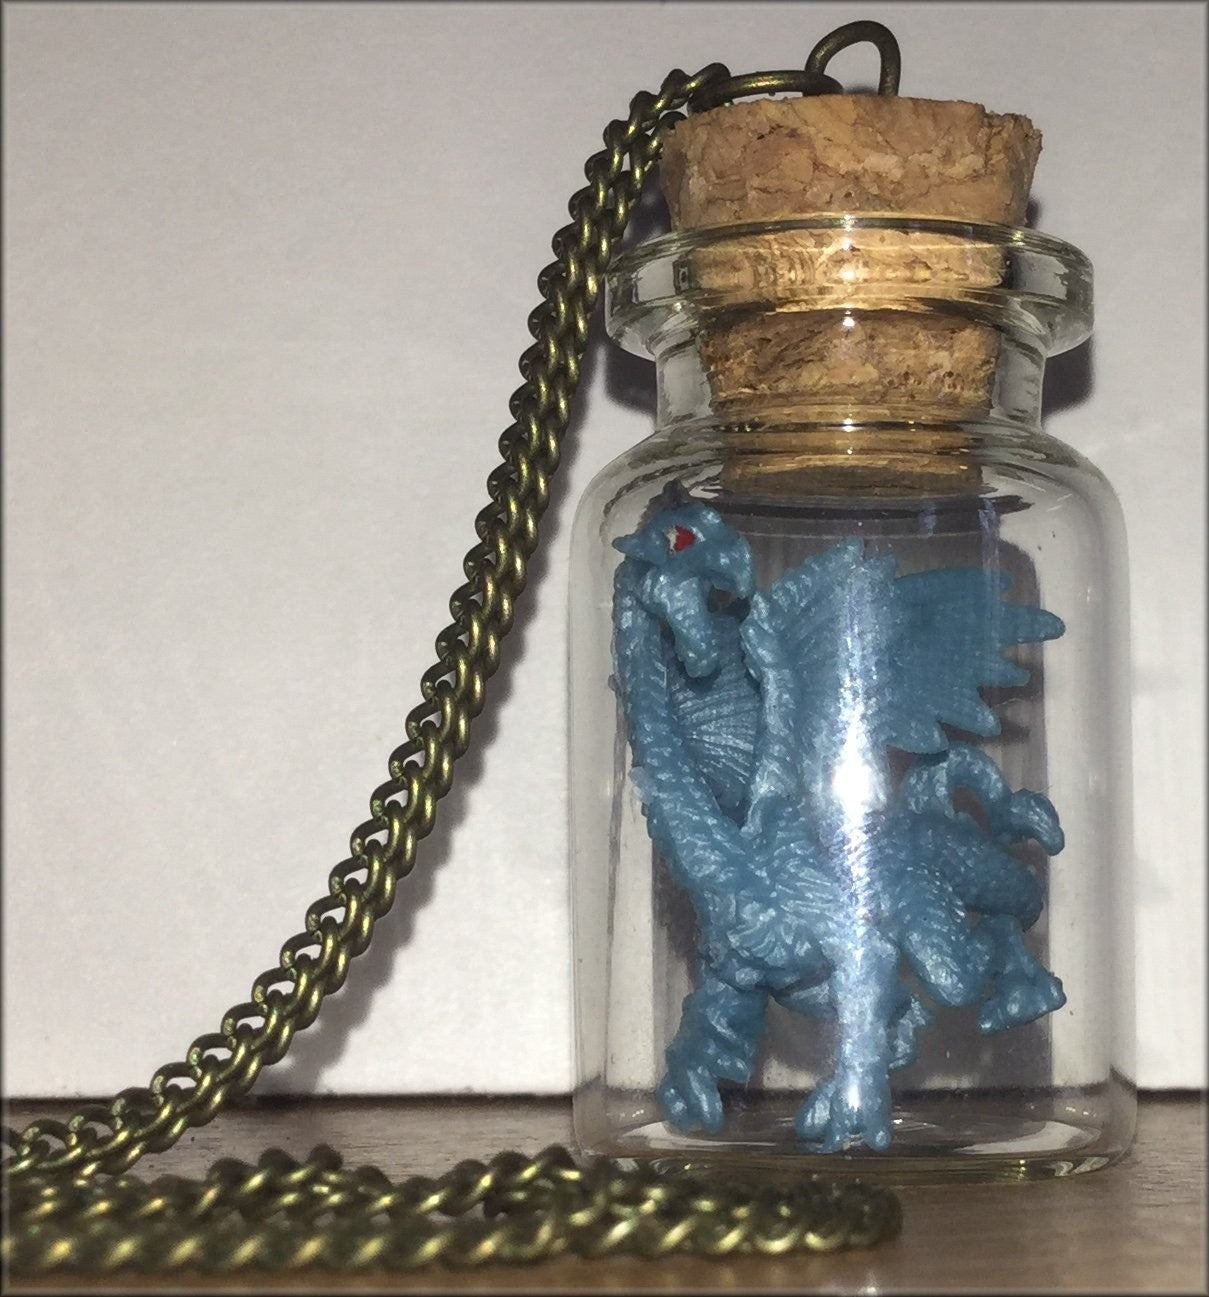 Dragon in a Bottle necklace